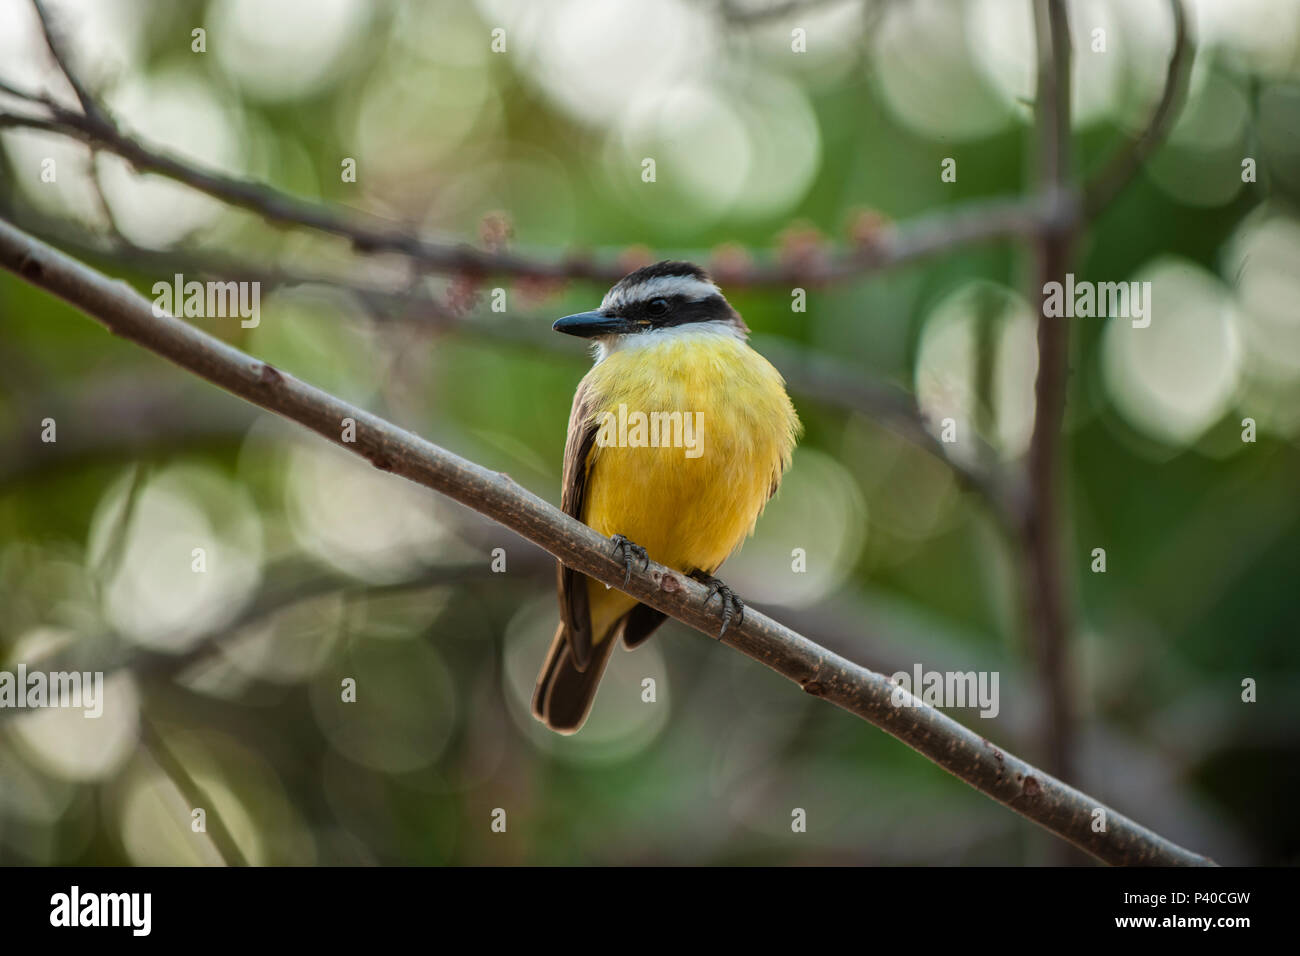 A Great Kiskadee (Pitangus sulphuratus) perching on a branch in the Pantanal wetlands of central Brazil - Stock Image